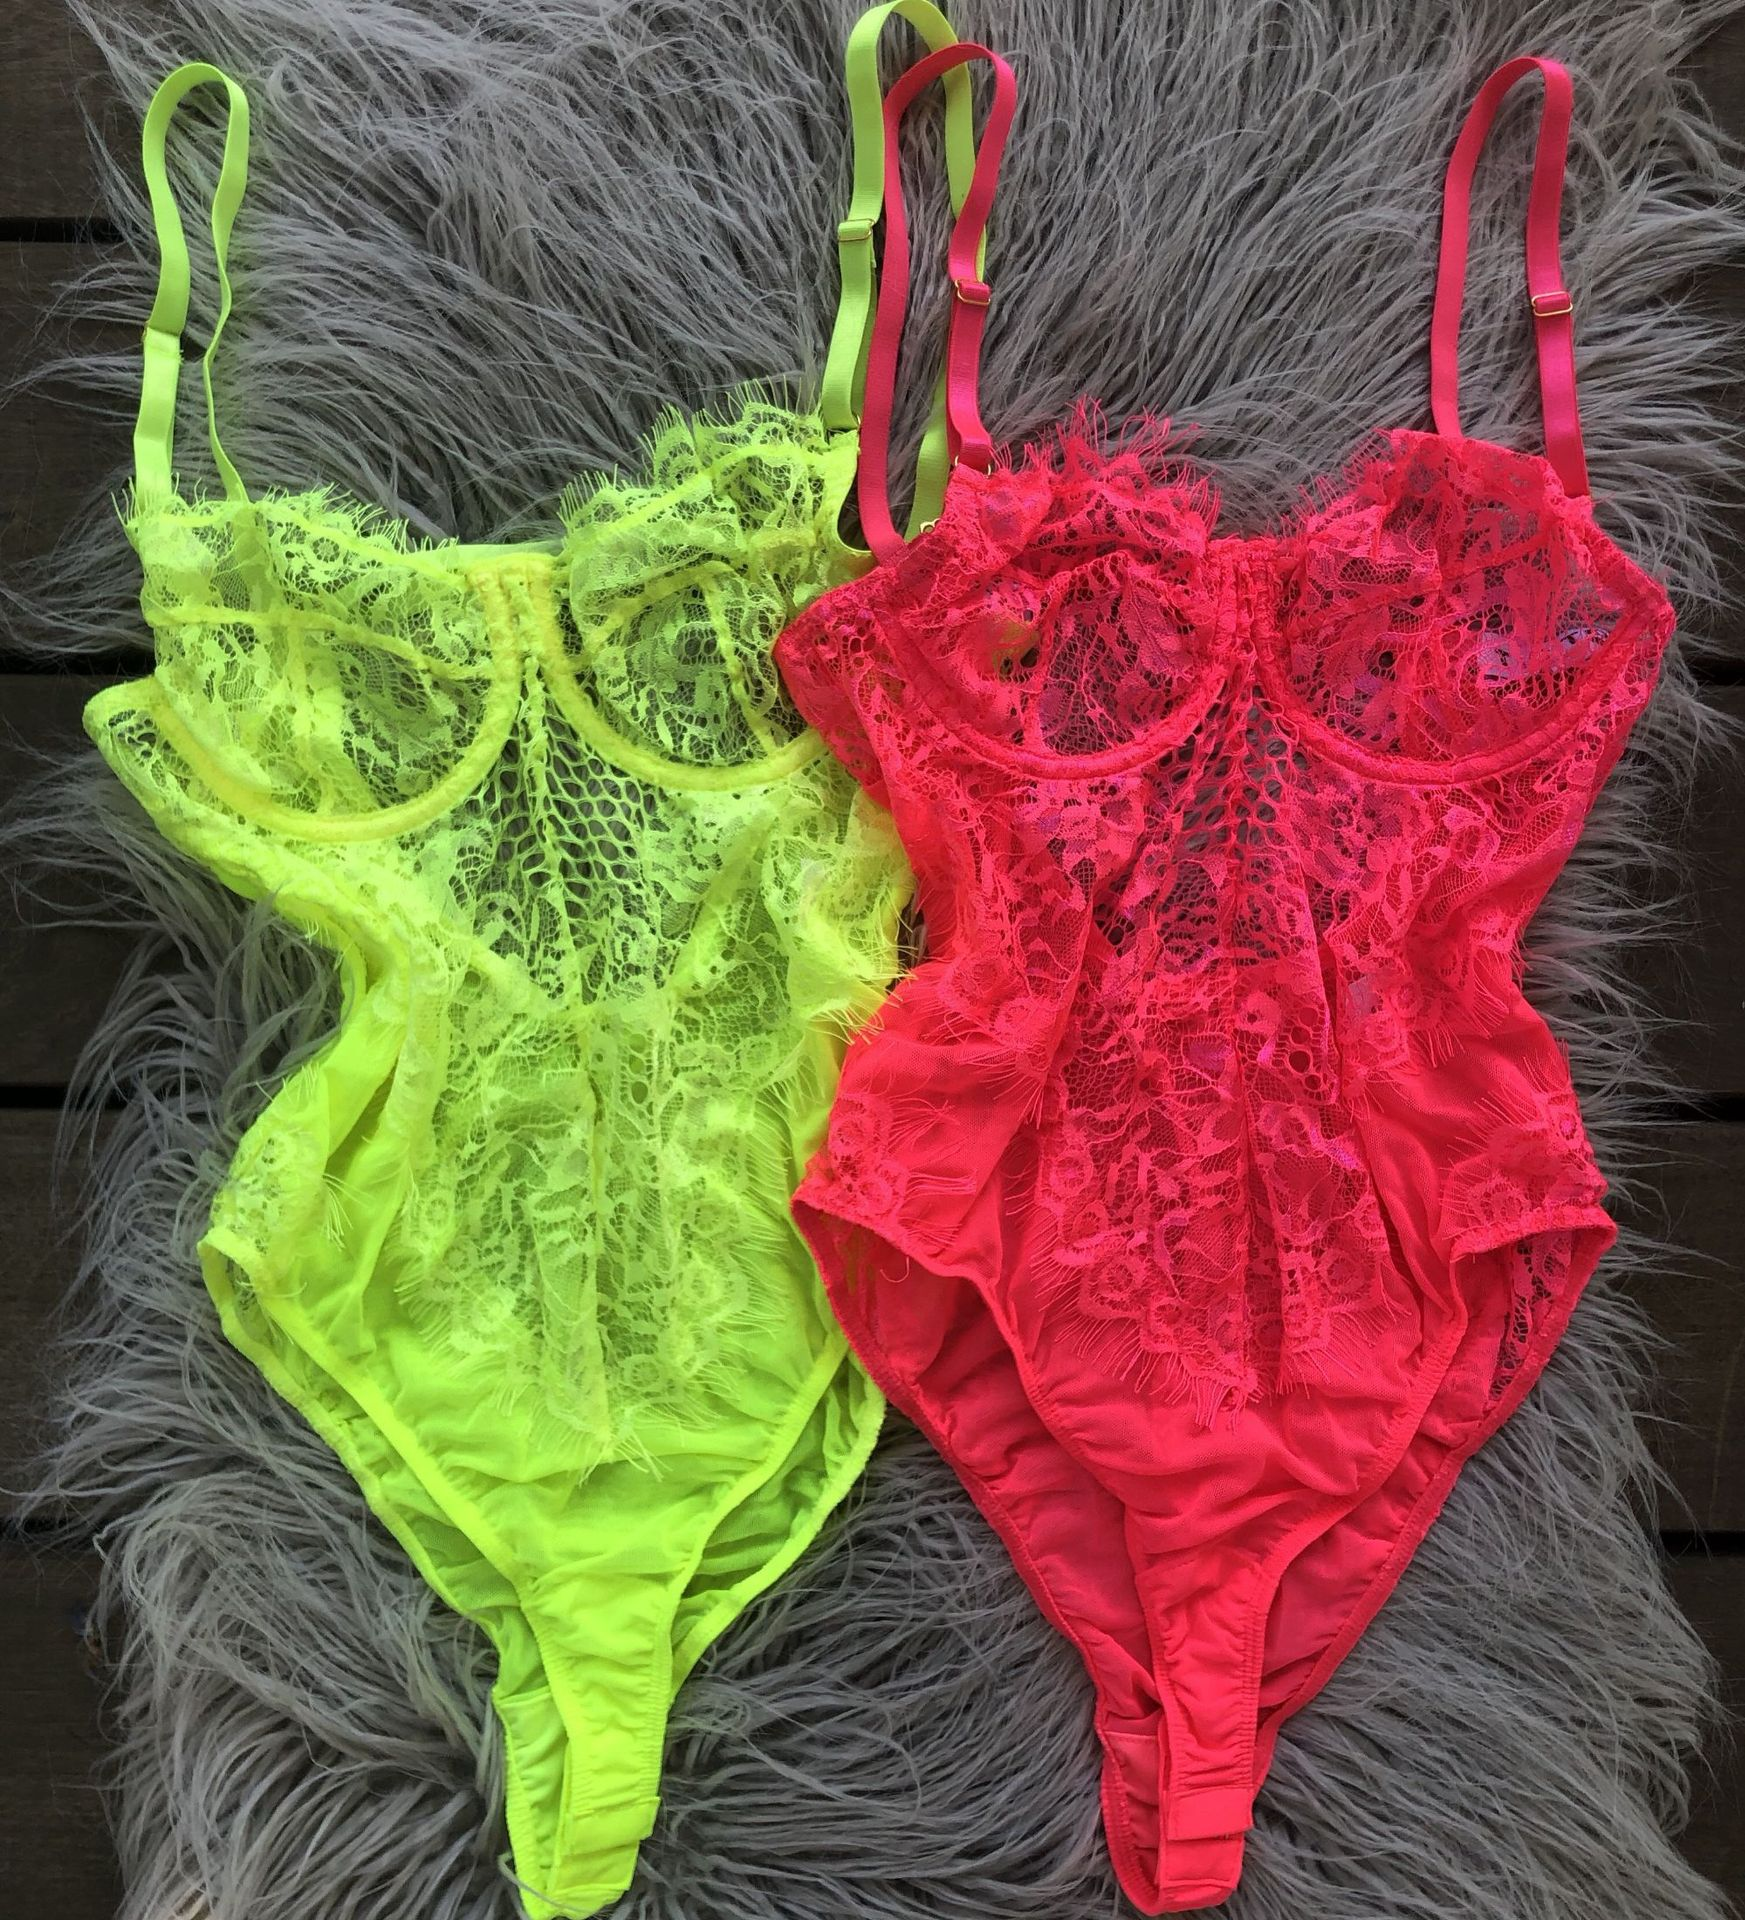 OMSJ New Neon Colors Fashion Eyelashes Lace Bodysuit Slim Fit Summer Sexy Backless Sheer Bodycon Jumpsuit Mesh Hollow Out Tops